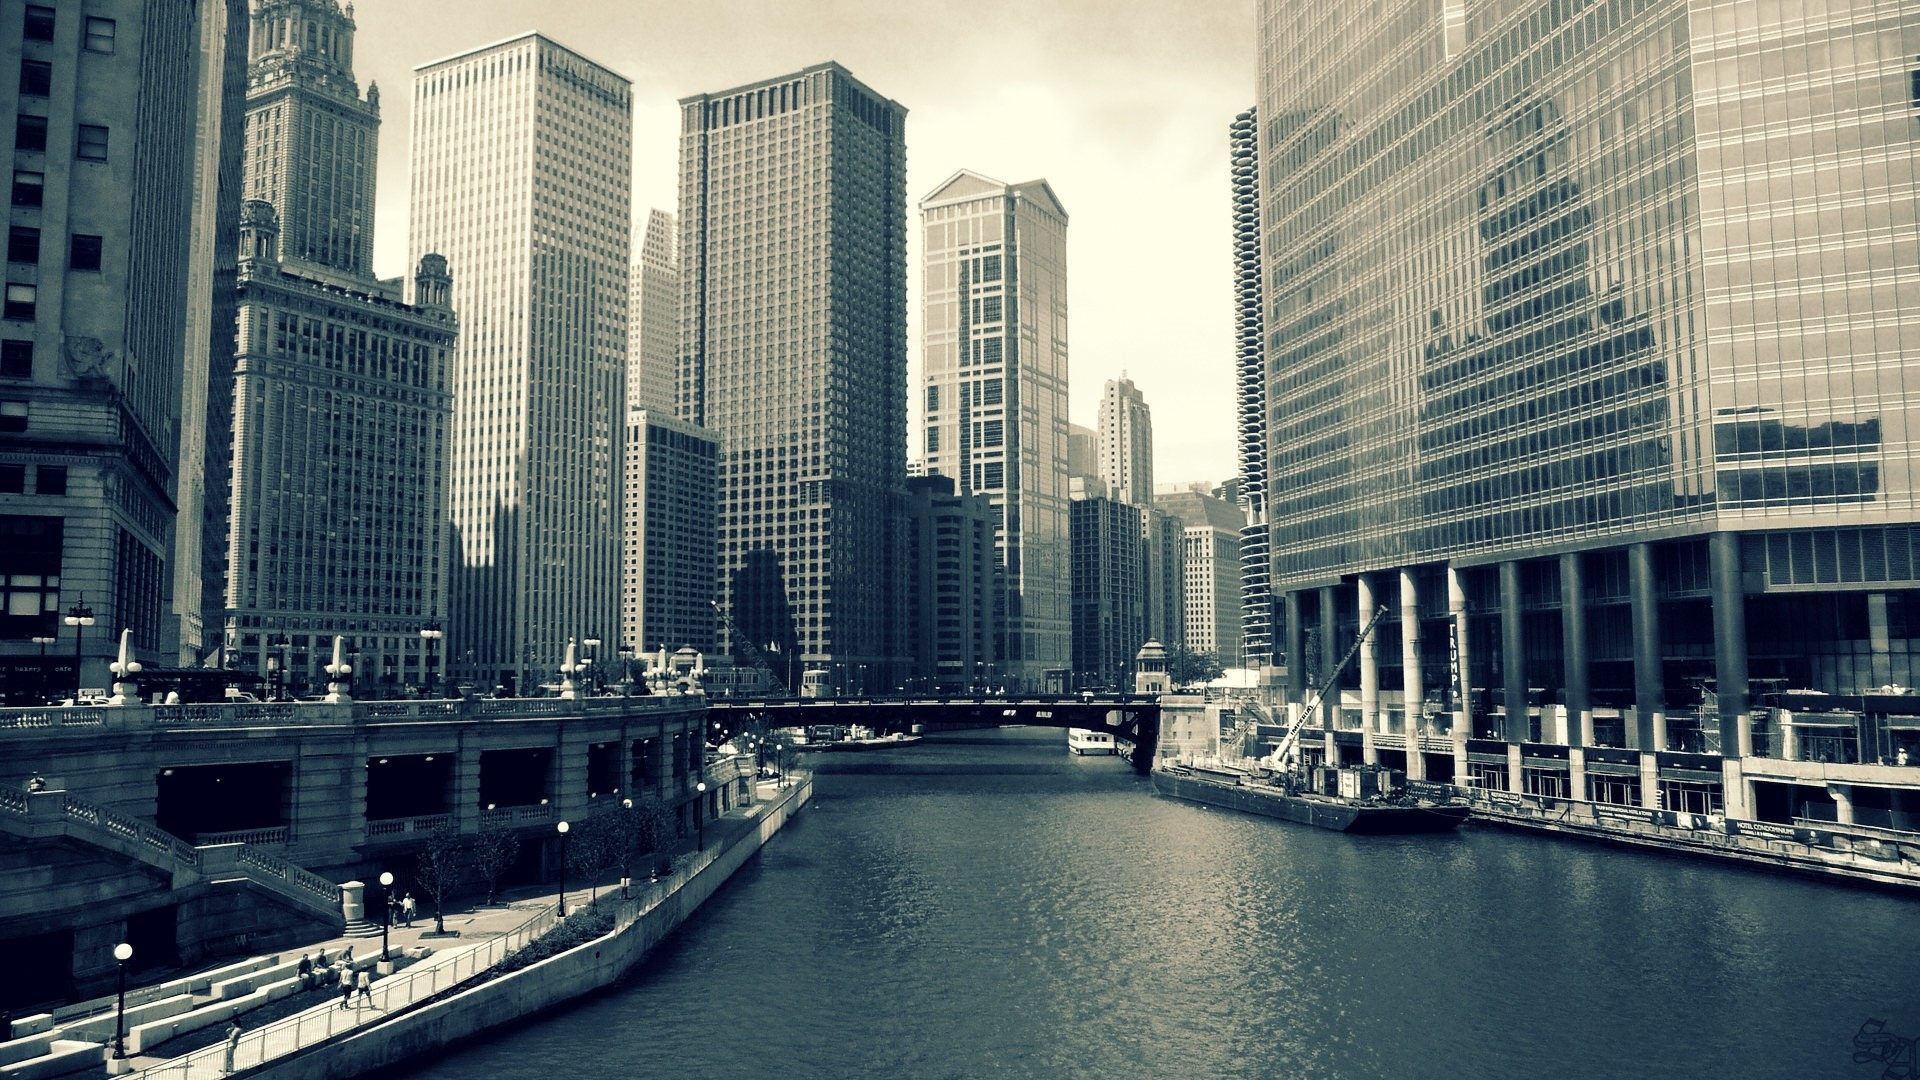 1920x1080 Cities Wallpapers - Page 1. chicago 1080